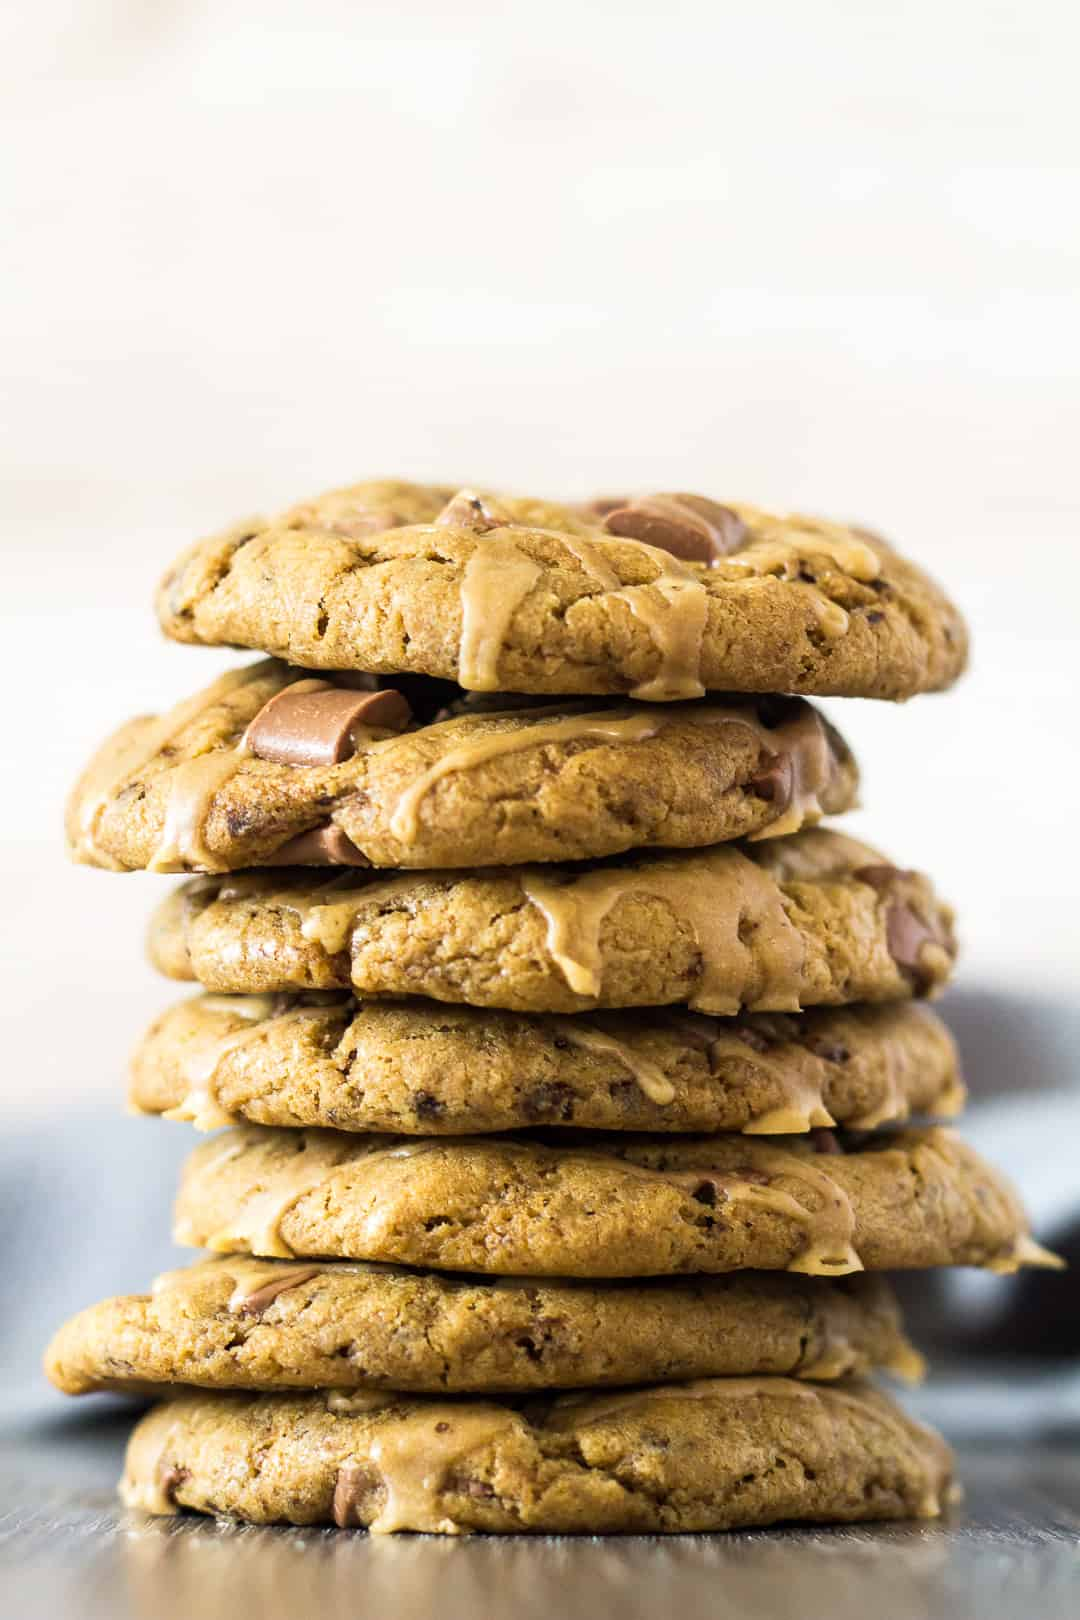 A tall stack of Chocolate Chip Coffee Cookies.